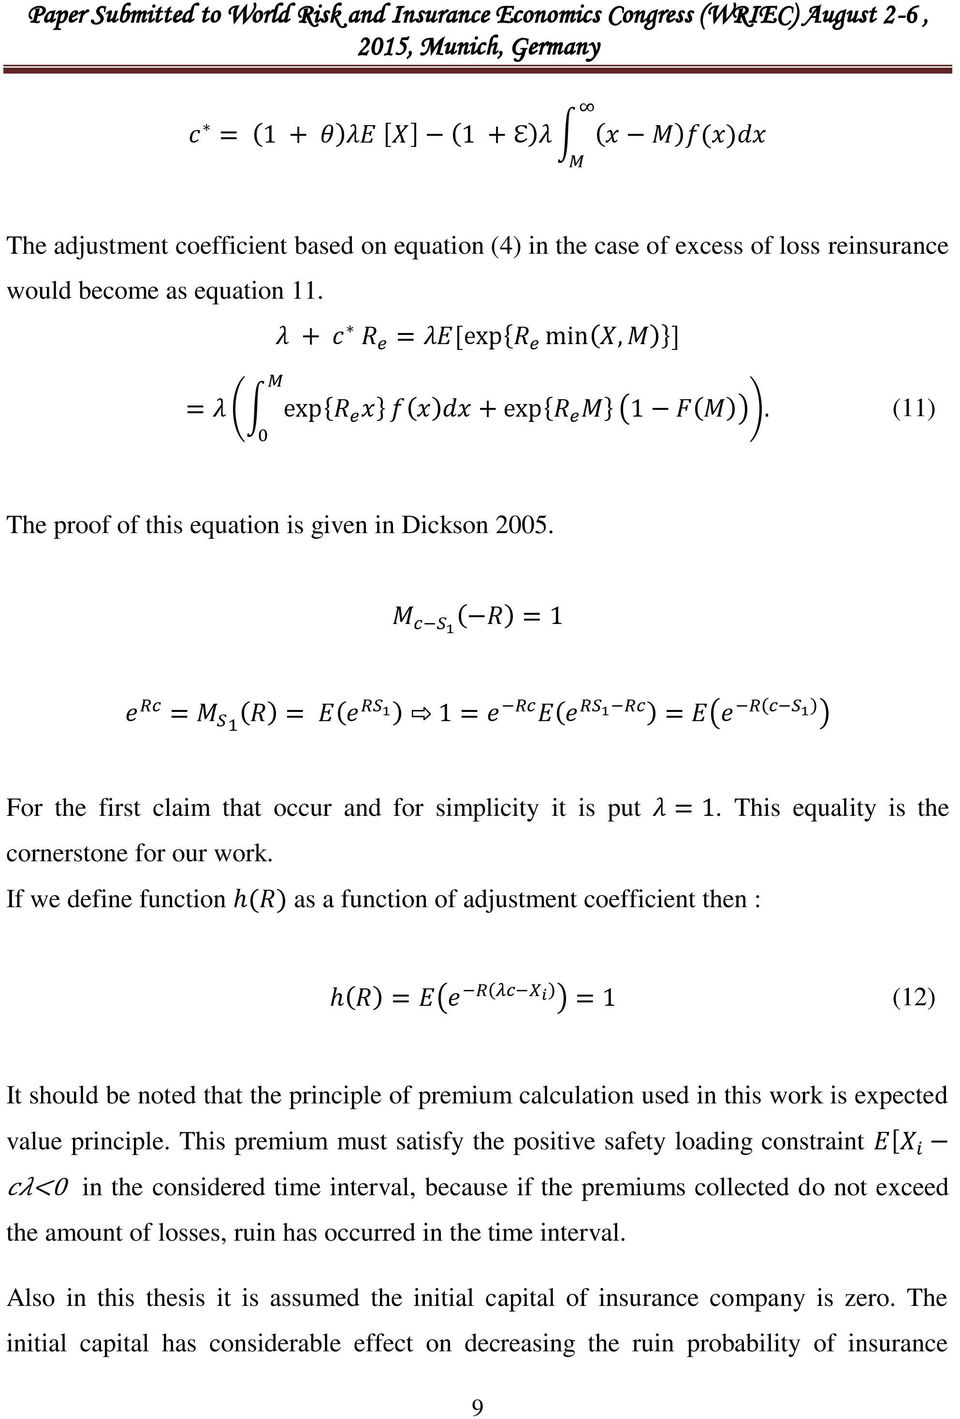 If we define function as a function of adjustment coefficient then : (12) It should be noted that the principle of premium calculation used in this work is expected value principle.